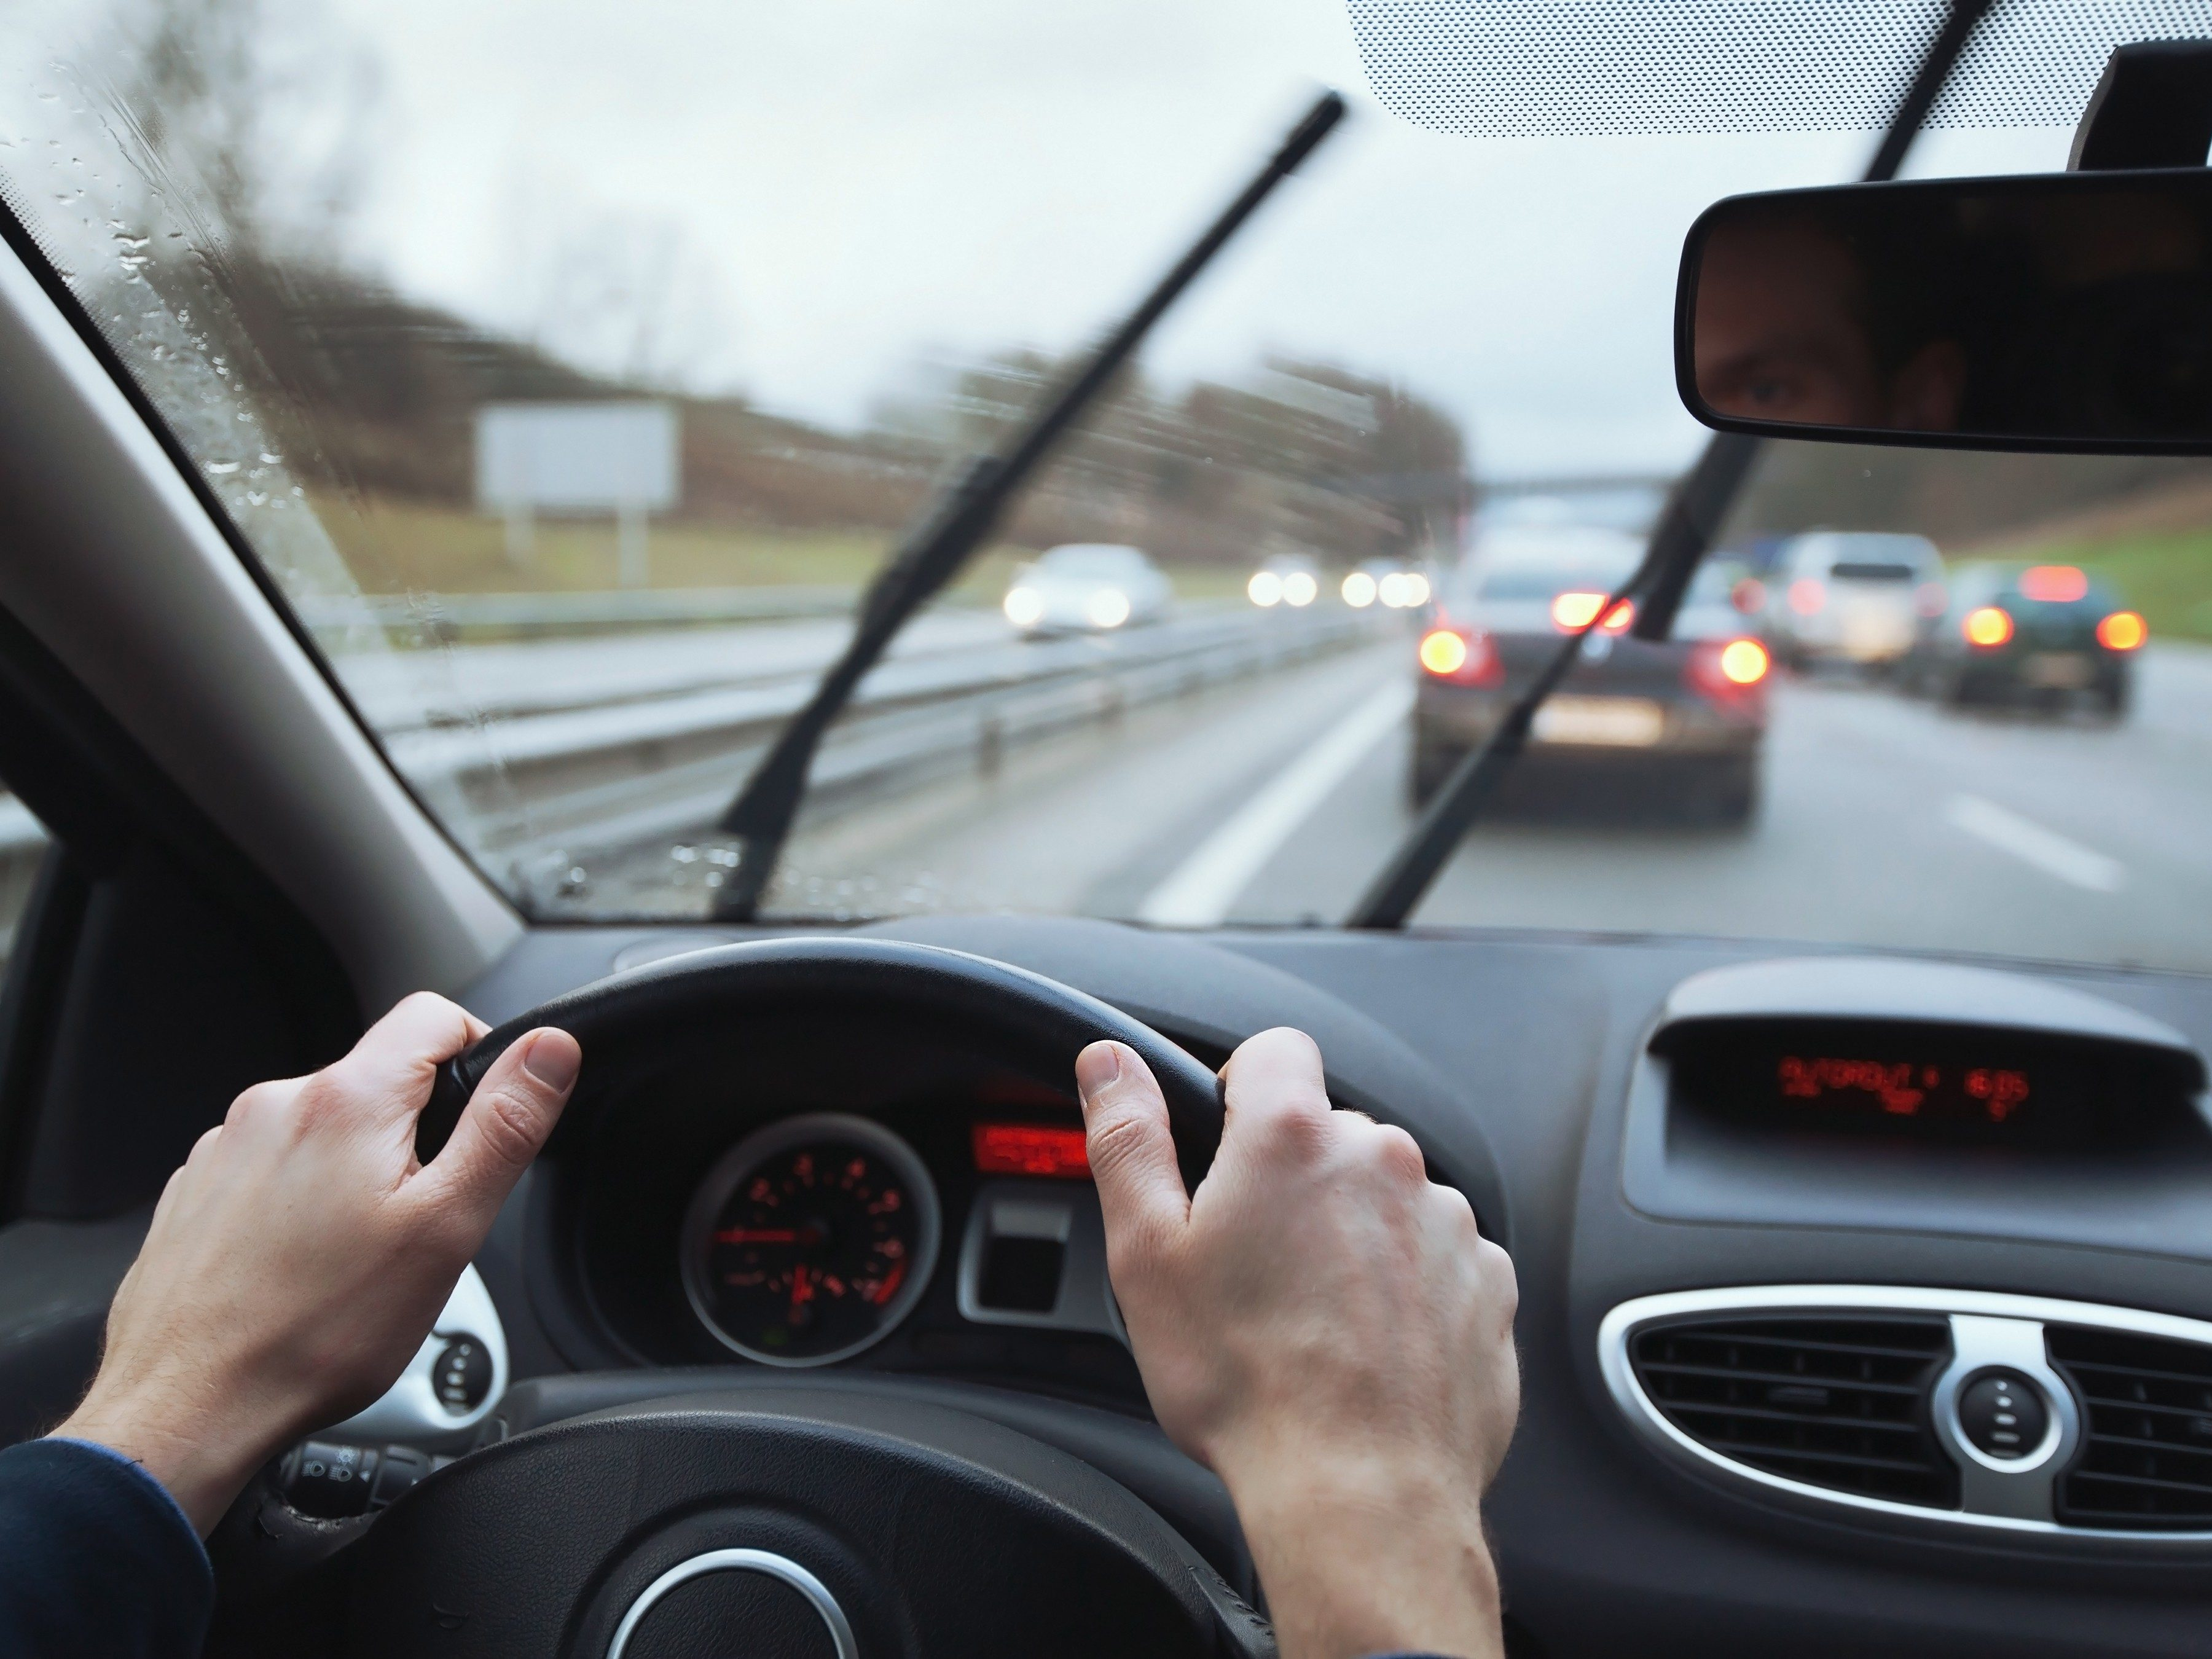 1. Automatic Car Windshield Wipers